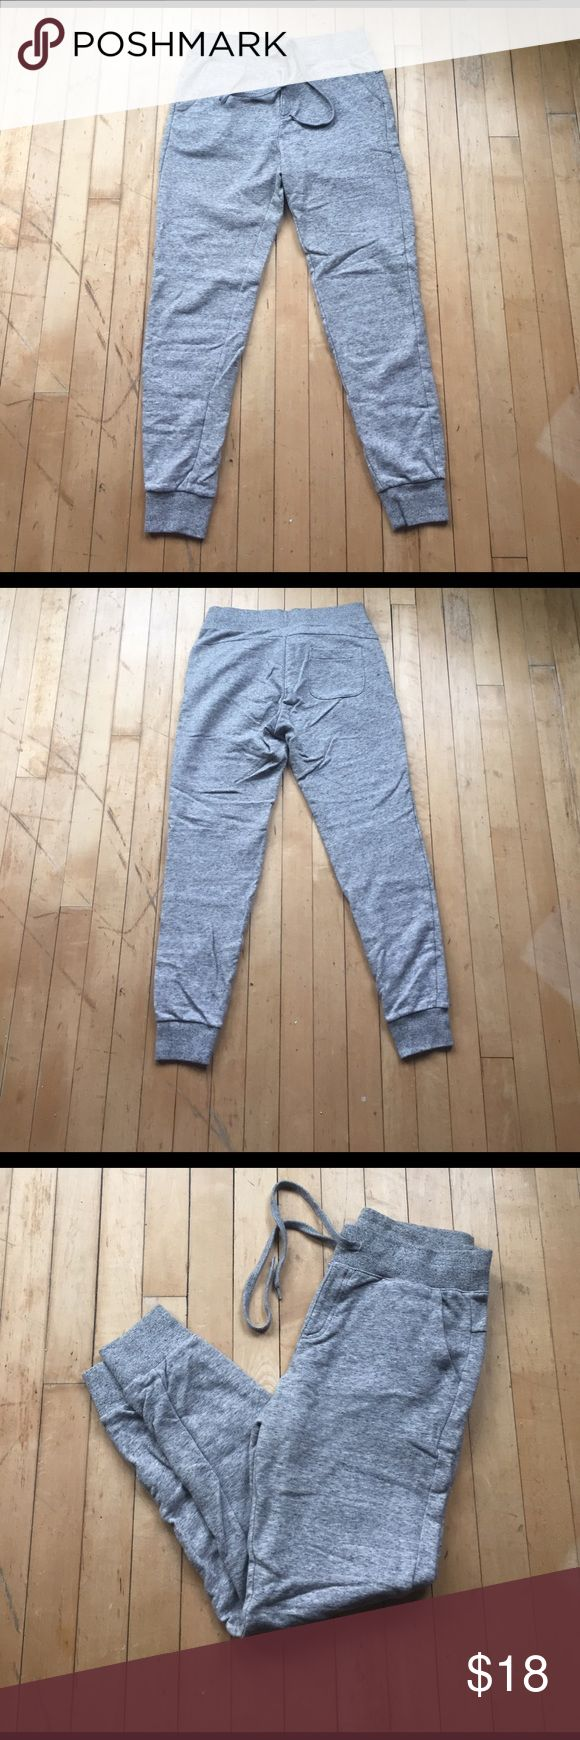 Uniqlo Japan gray heathered jogger sweatpants Gently used, very sturdy jogger sweatpant.  No interior tag, but size is small/xs. Terry cloth-like interior. Uniqlo is a Japanese brand that has recently begun appearing in the USA. Uniqlo Pants Track Pants & Joggers